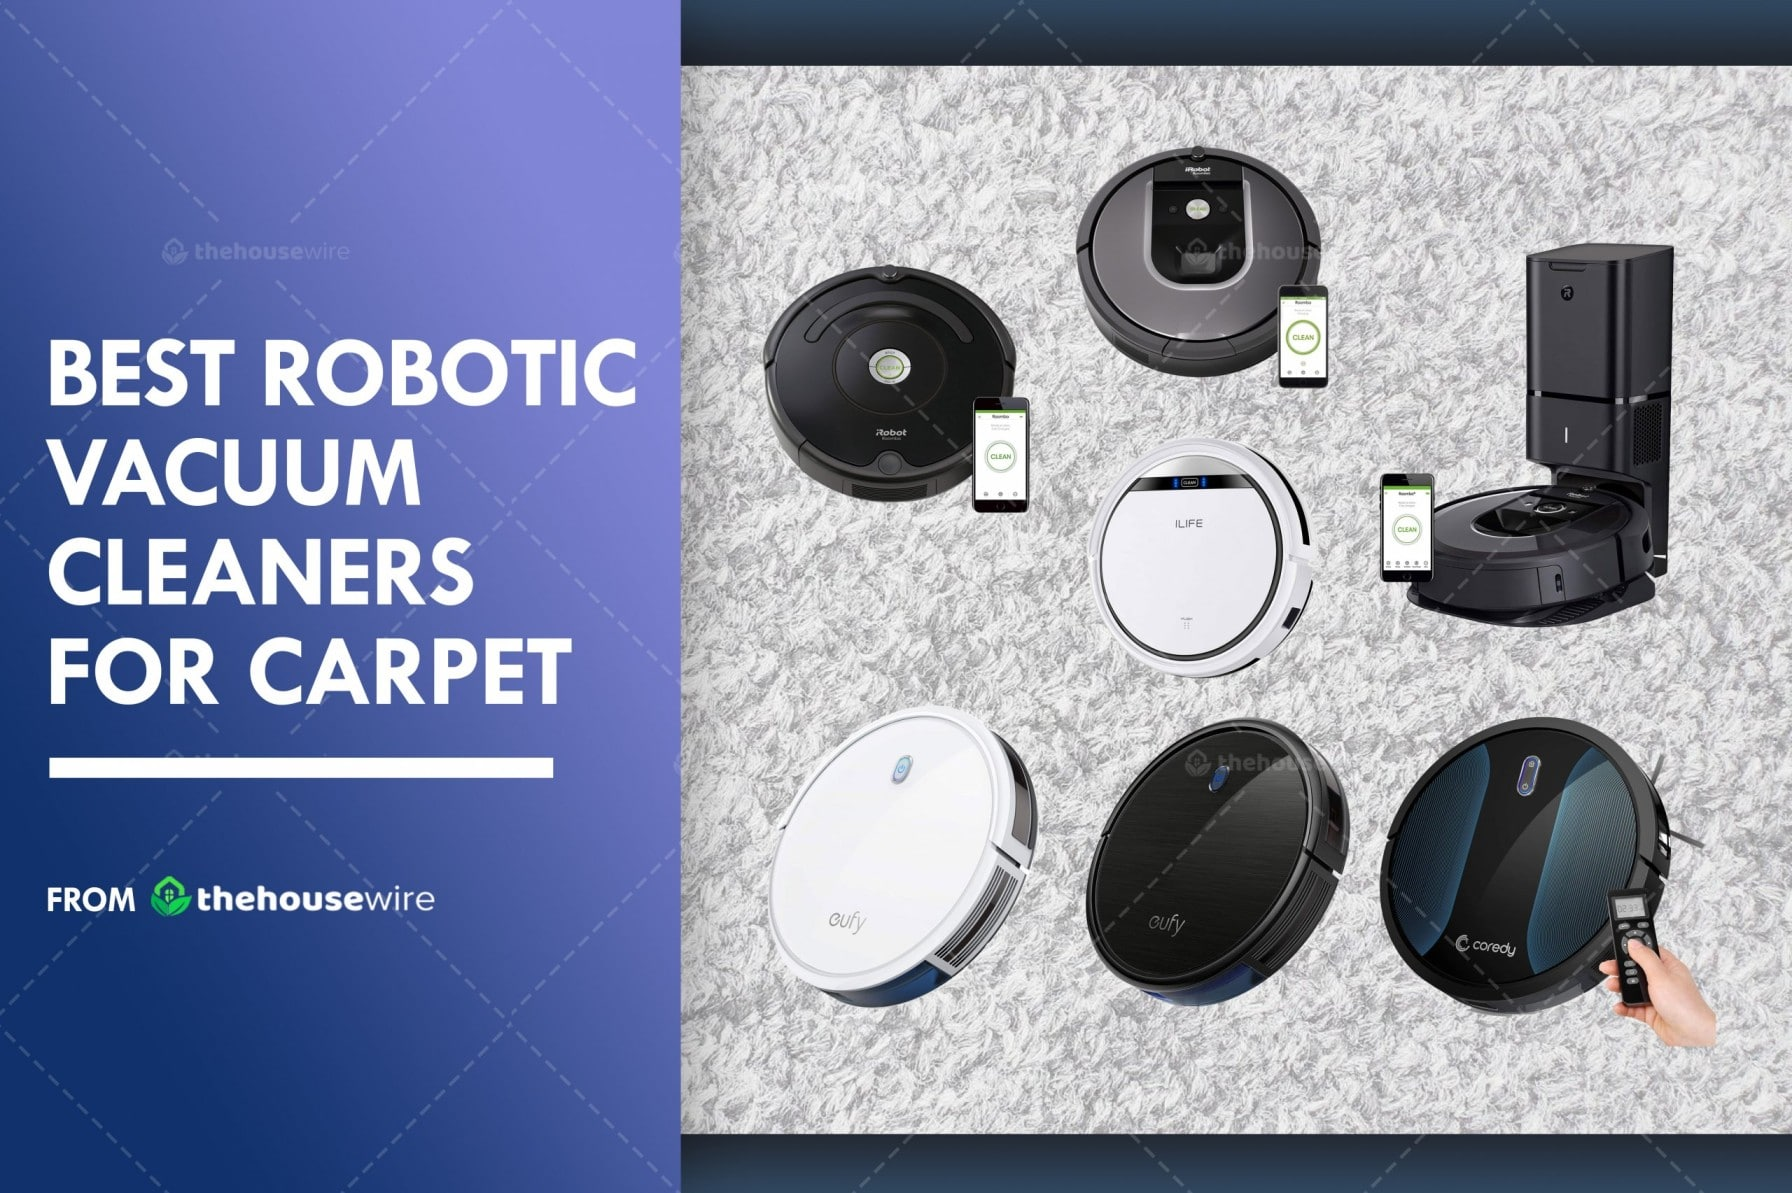 The 7 Best Robotic Vacuum Cleaners for Carpet of 2021